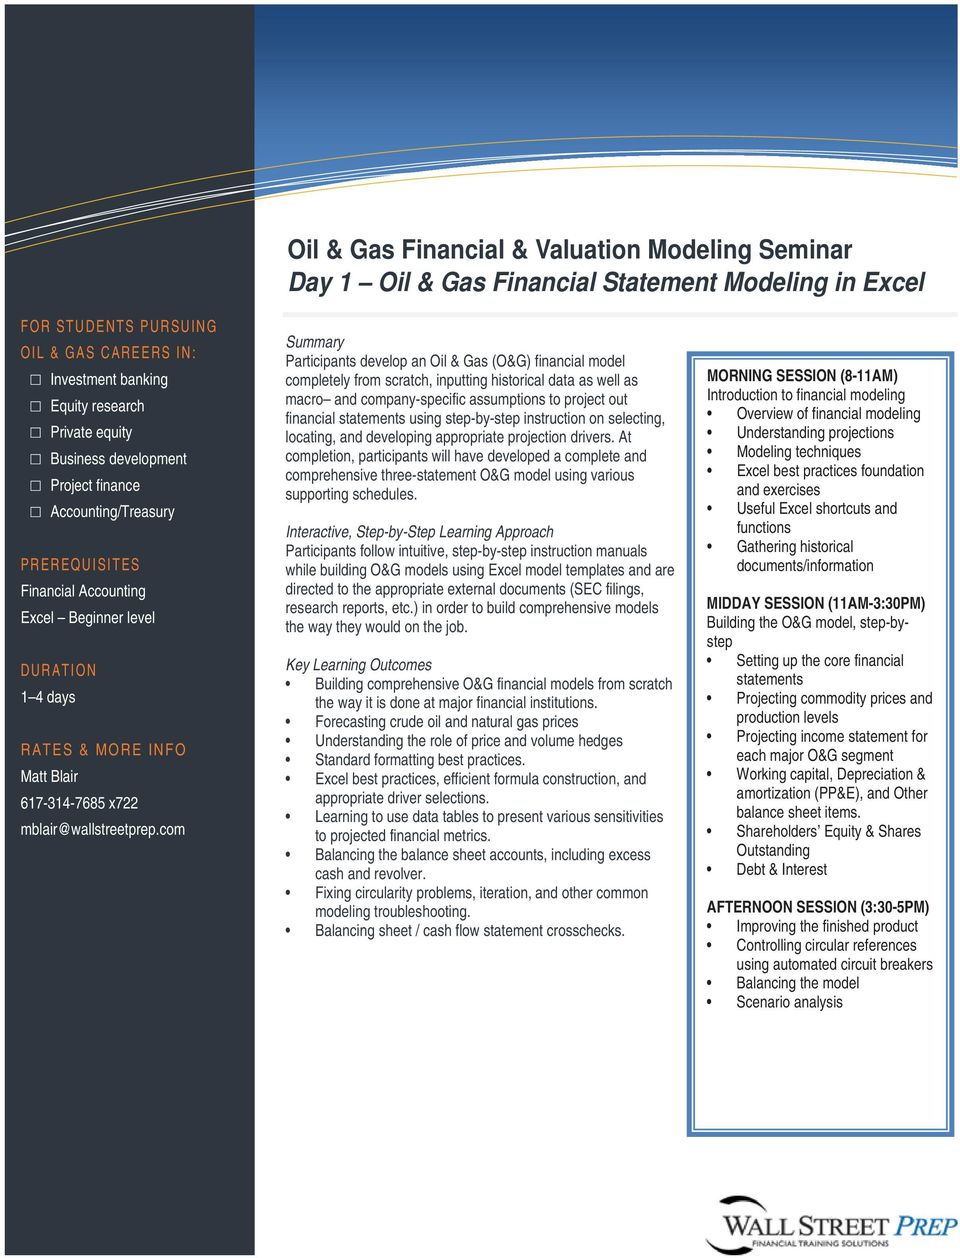 Oil & Gas Financial & Valuation Modeling Seminar - PDF